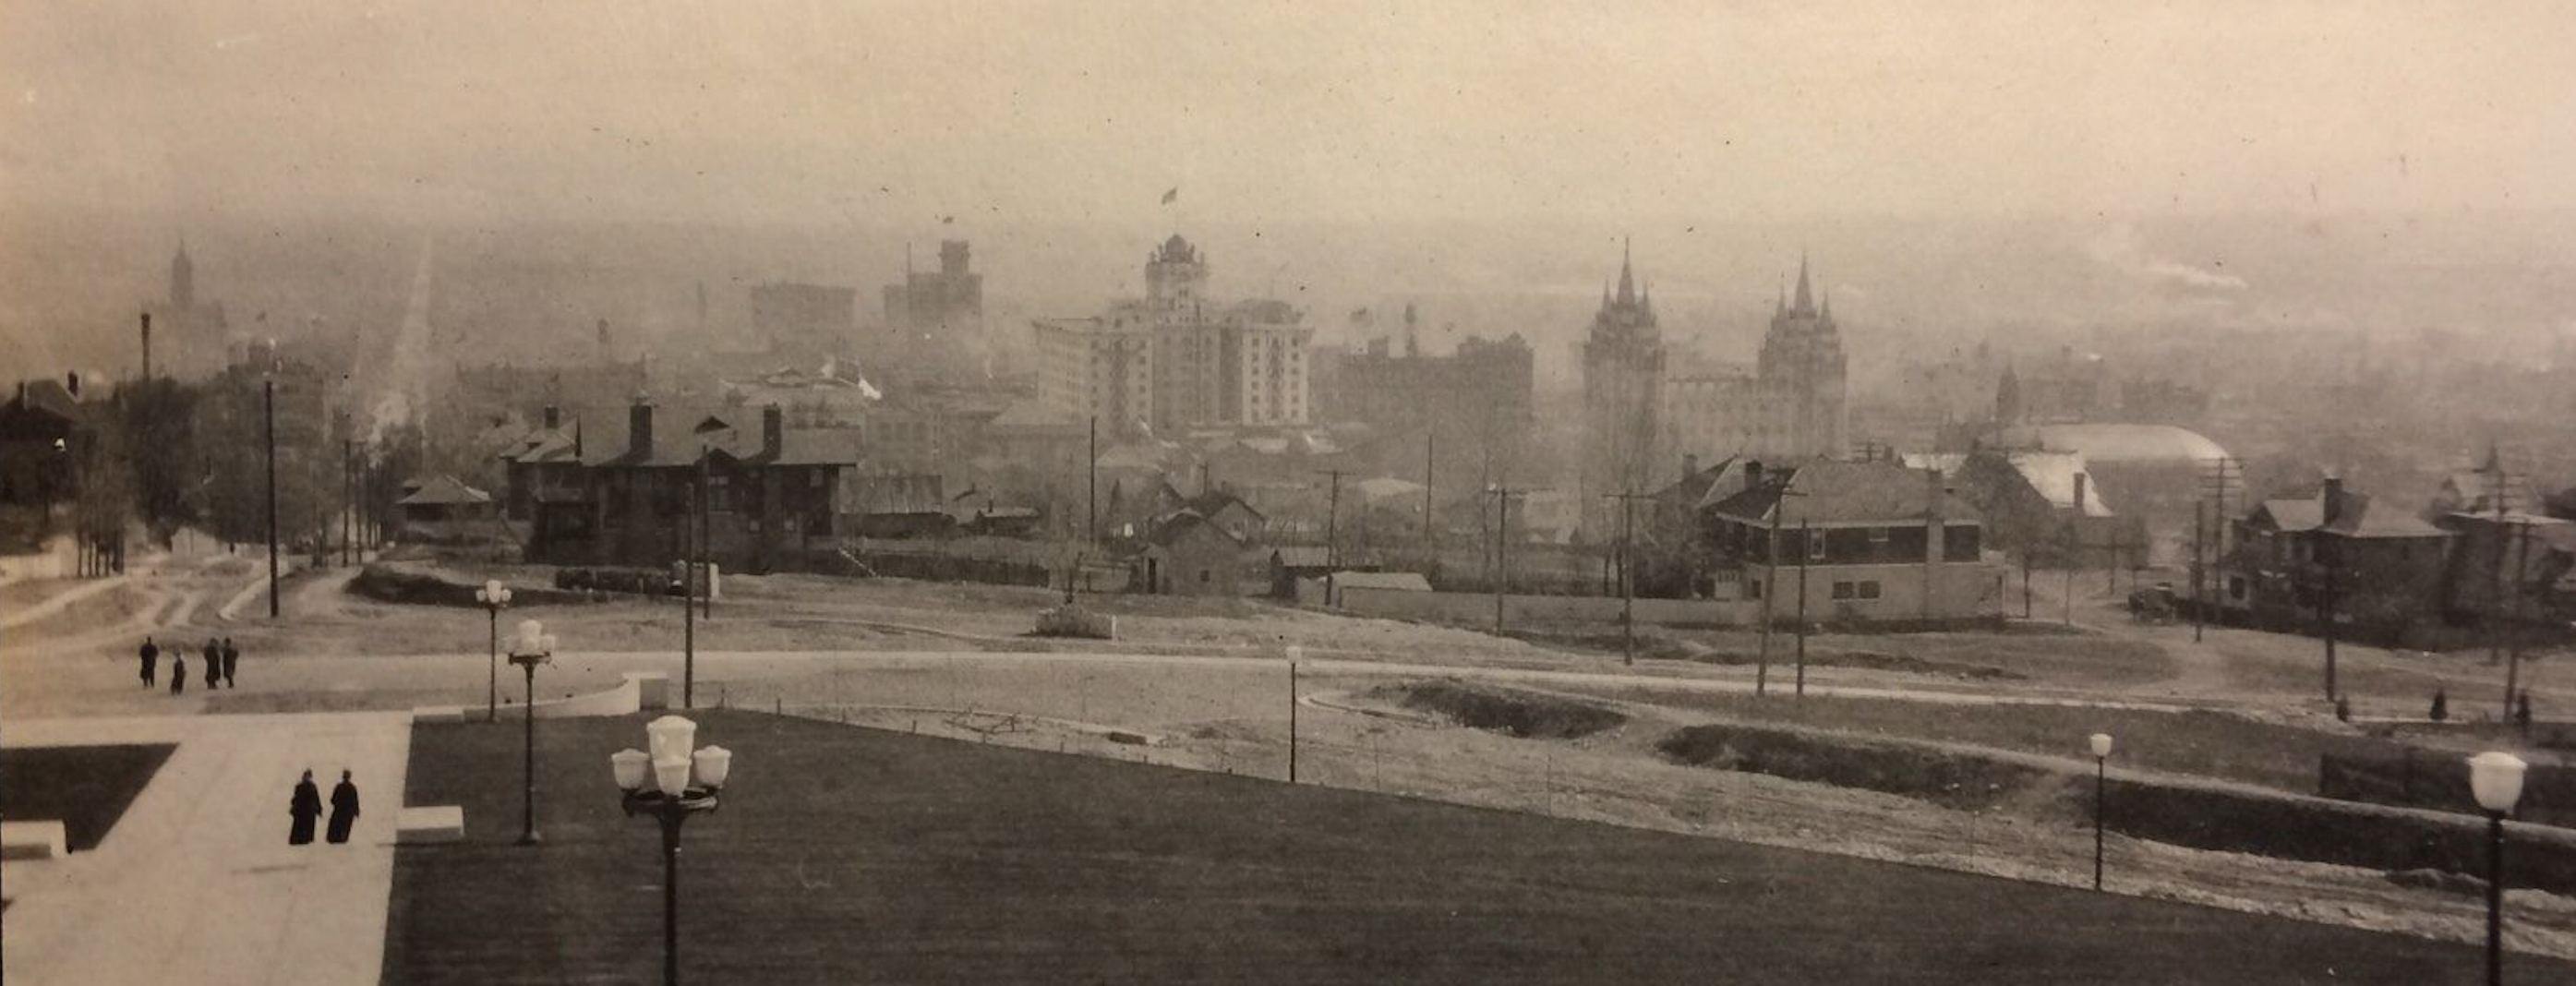 A view of the Salt Lake Valley from the steps of the Utah State Capitol on April 6, 1917. The view includes the Hotel Utah, center, the Salt Lake Temple, and the Salt Lake Tabernacle.